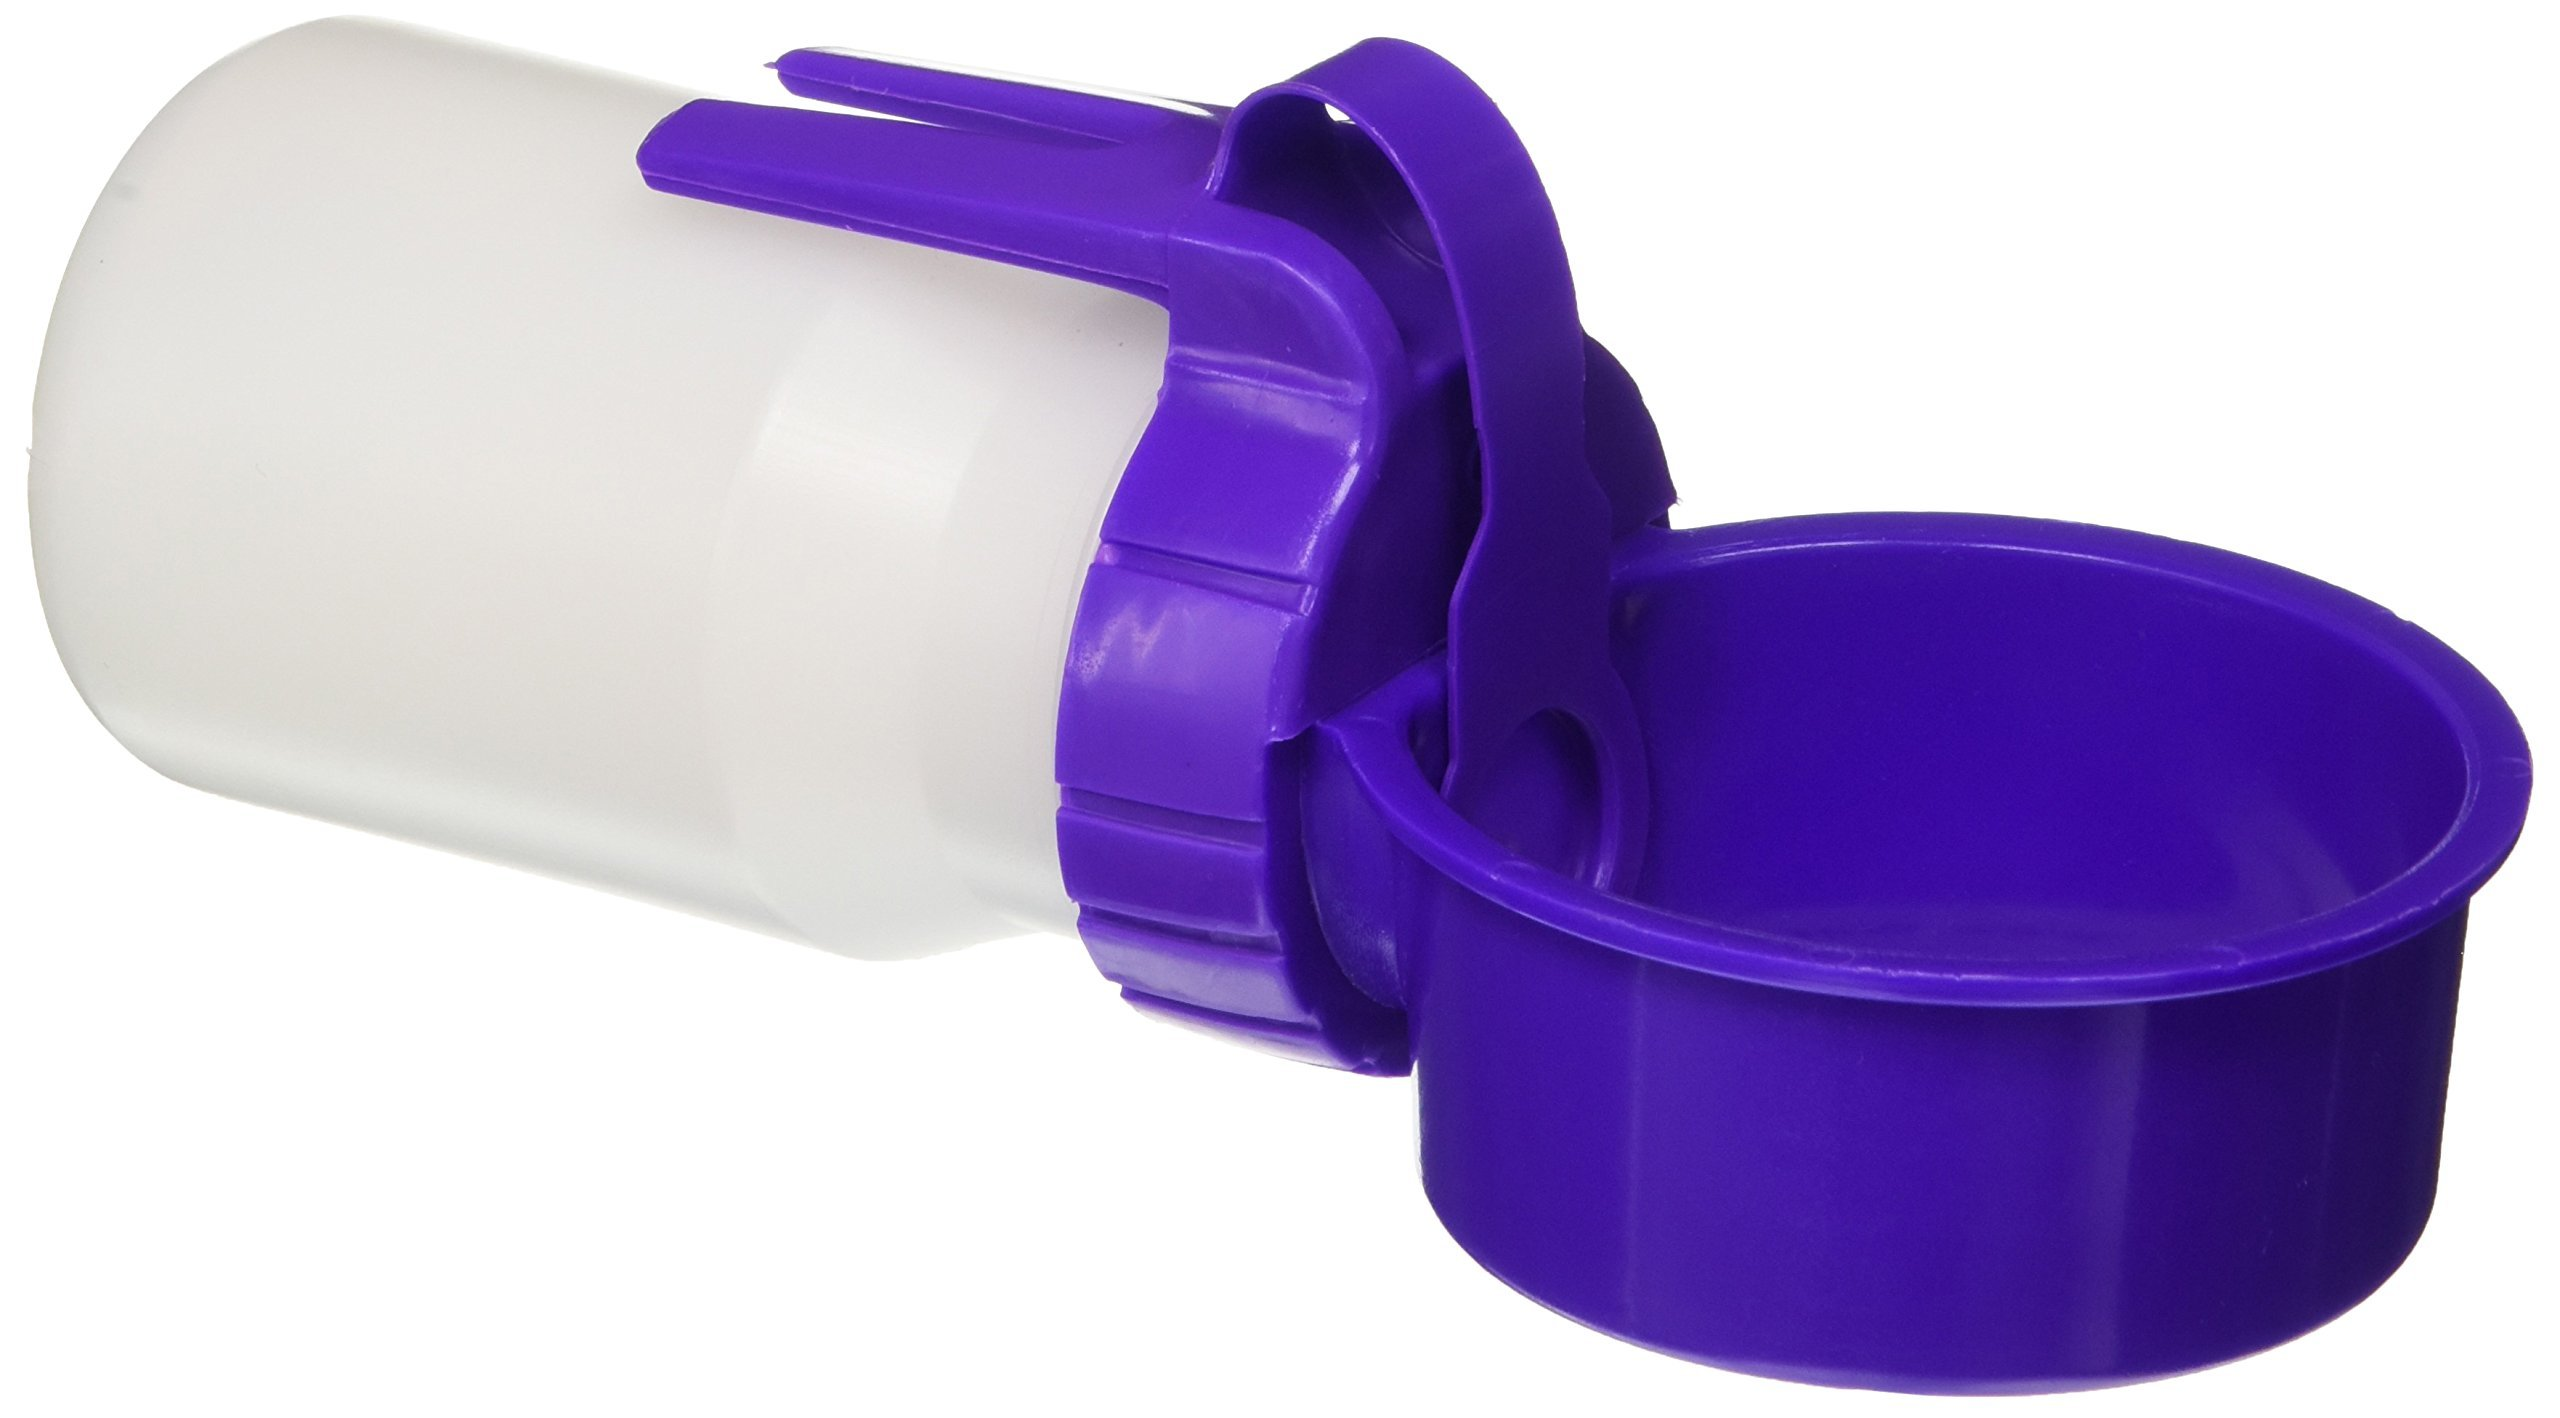 Water Rover Smaller 3-Inch Bowl and 8-Ounce Bottle, Purple